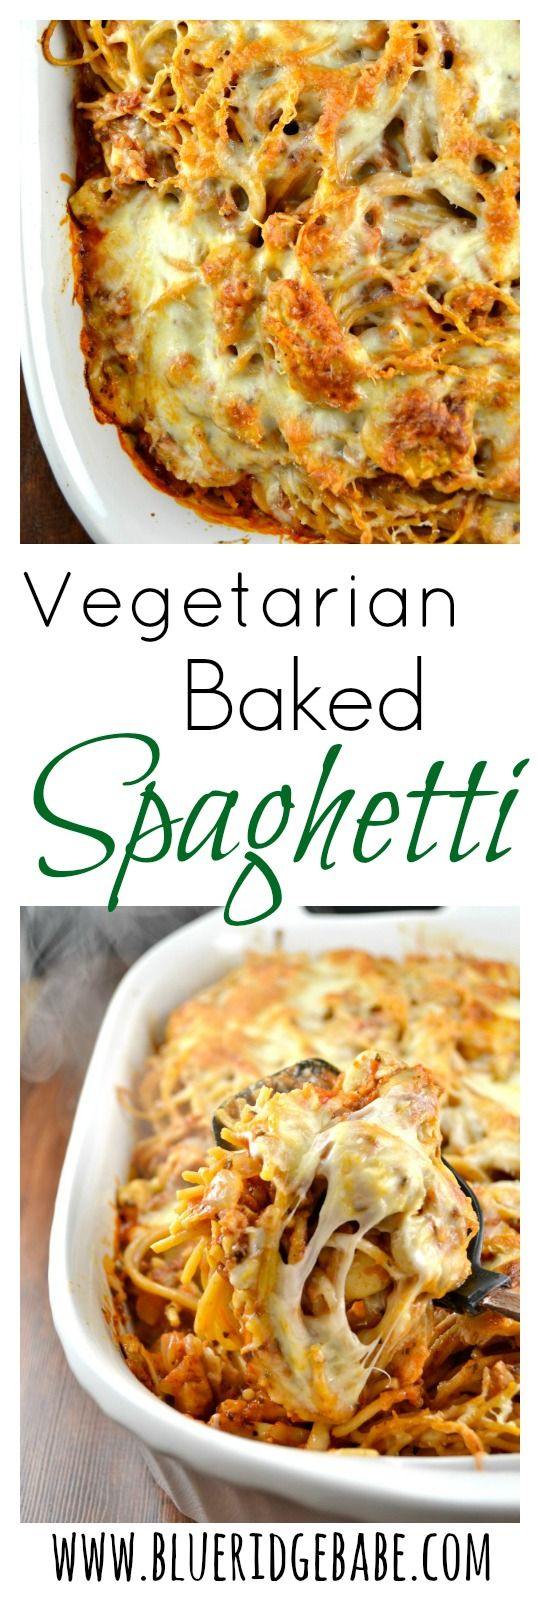 This spicy vegetarian baked spaghetti is what dreams are made of! A guaranteed family pleaser and the leftovers are AWESOME!